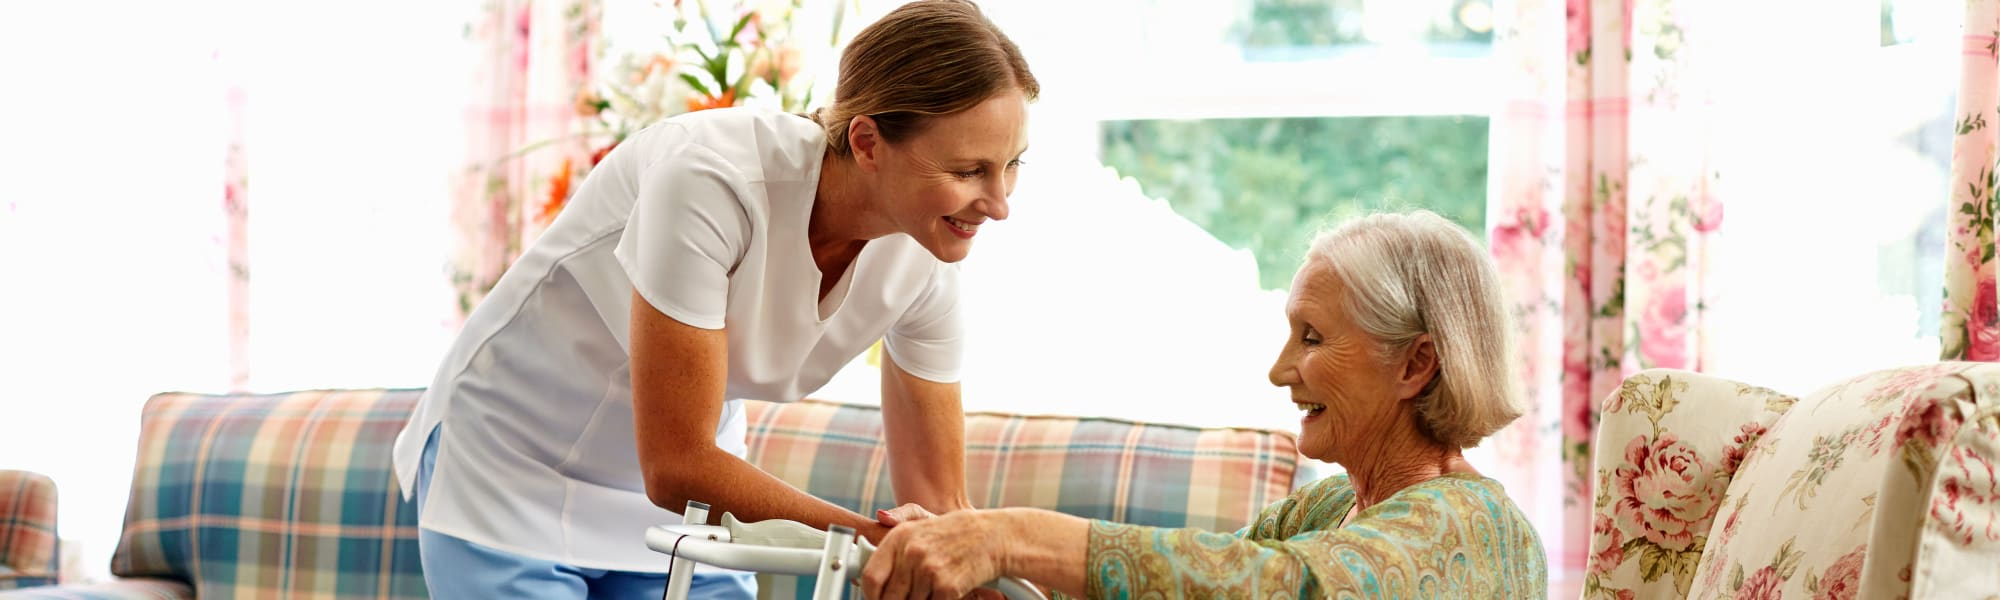 Our services at Careage Home Health in Lakewood, Washington.